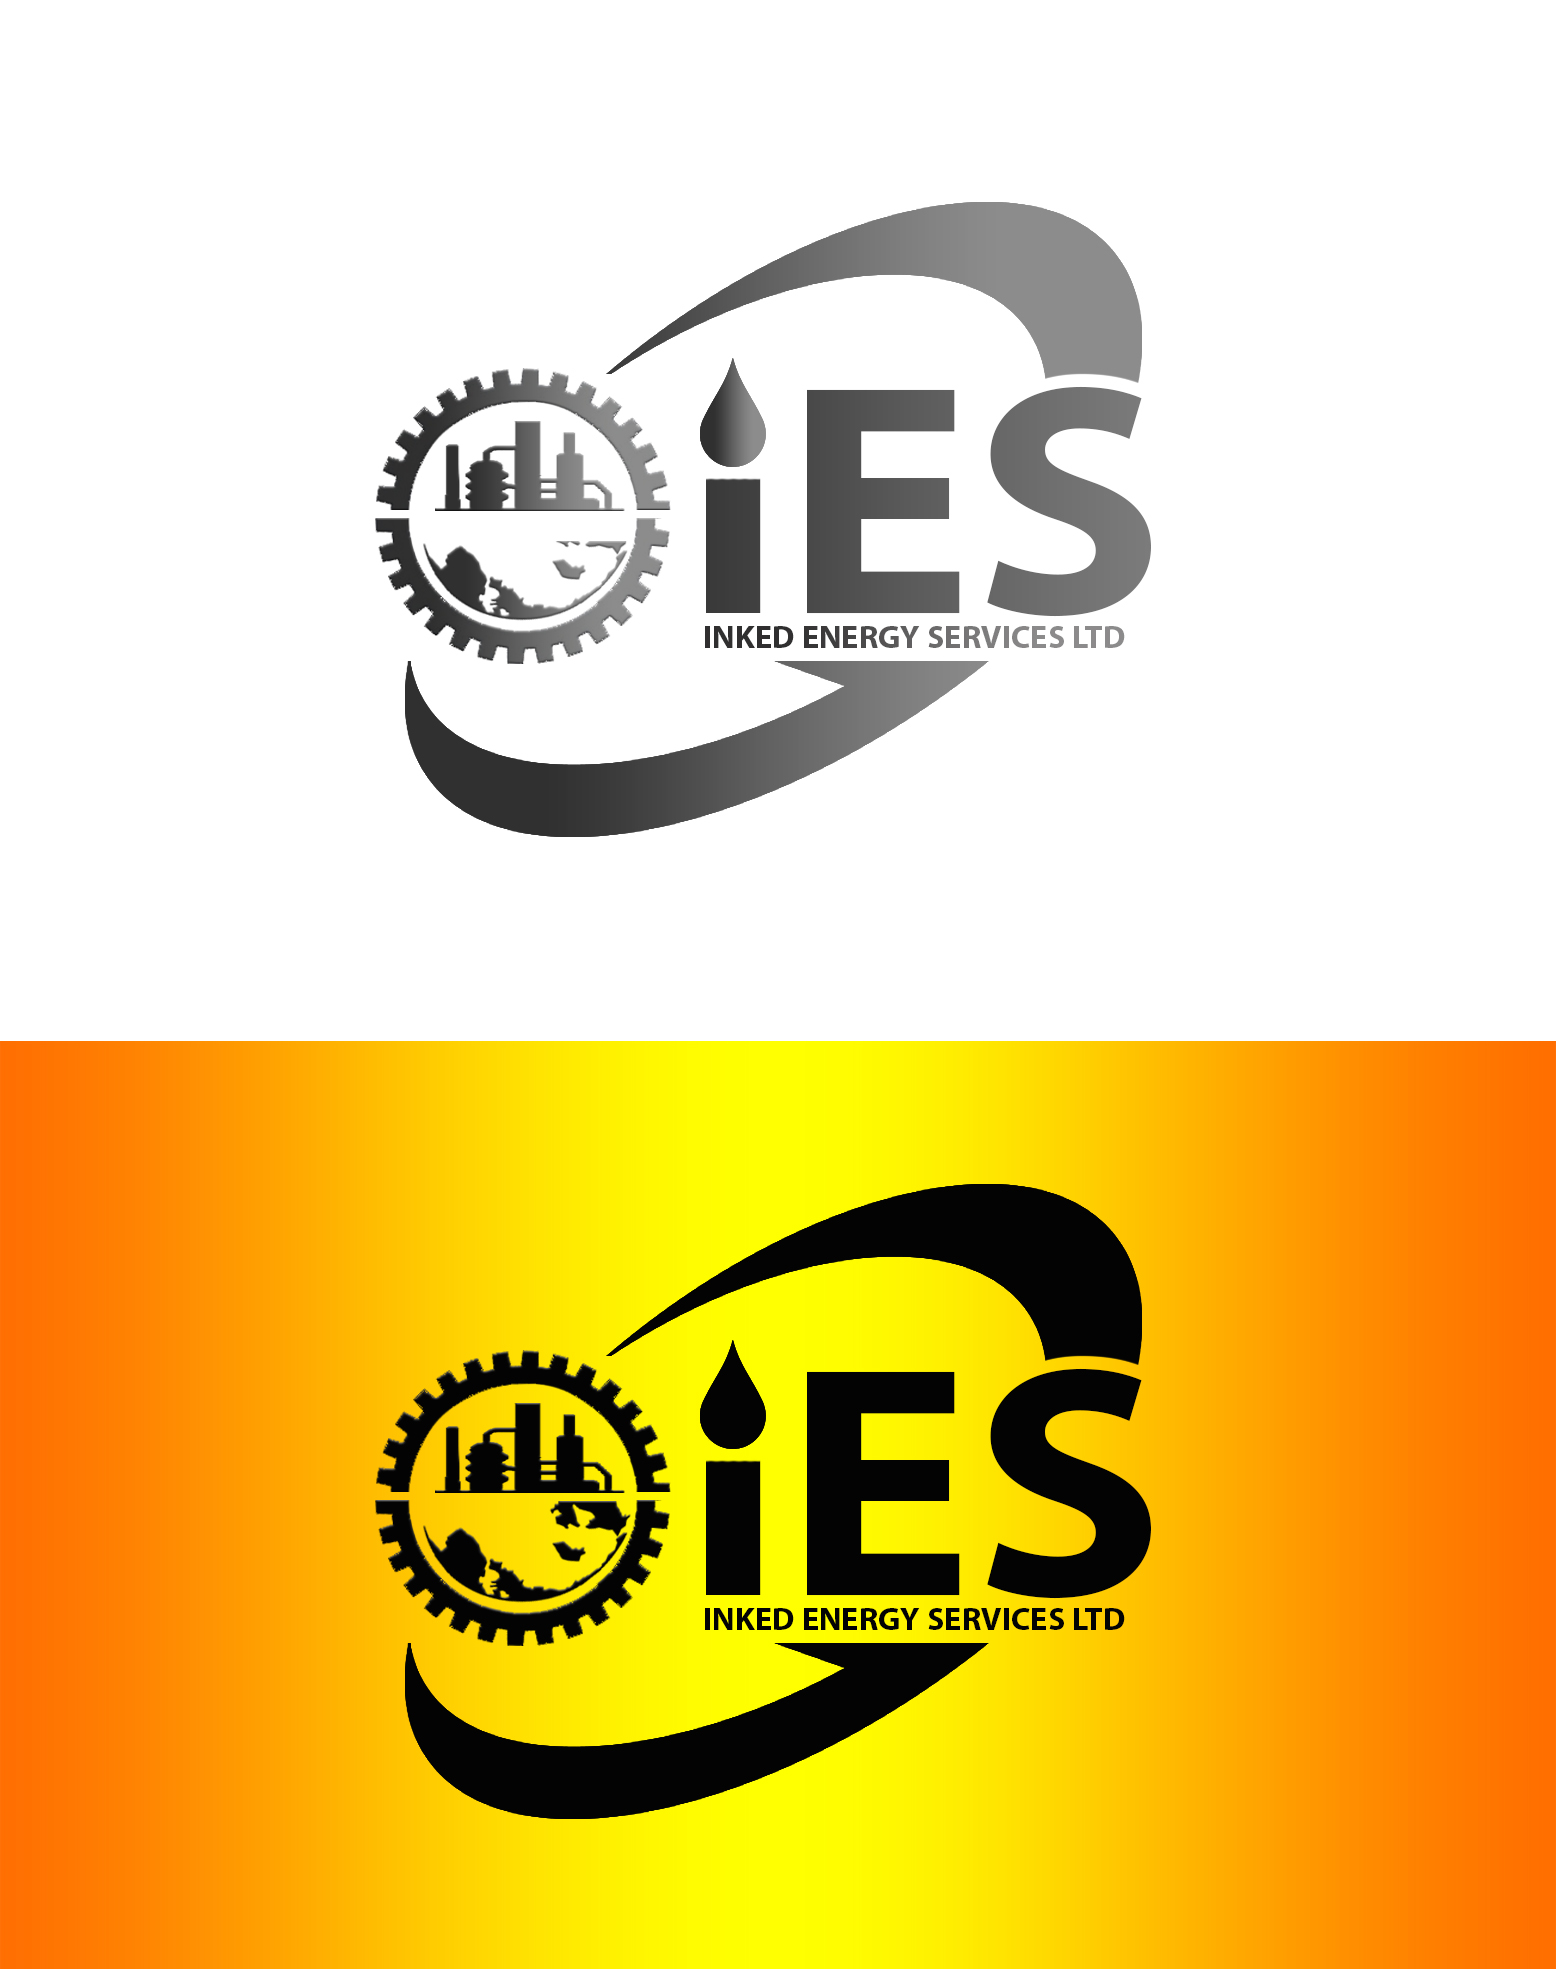 Logo Design by JSDESIGNGROUP - Entry No. 111 in the Logo Design Contest Creative Logo Design for INKED ENERGY SERVICES LTD.